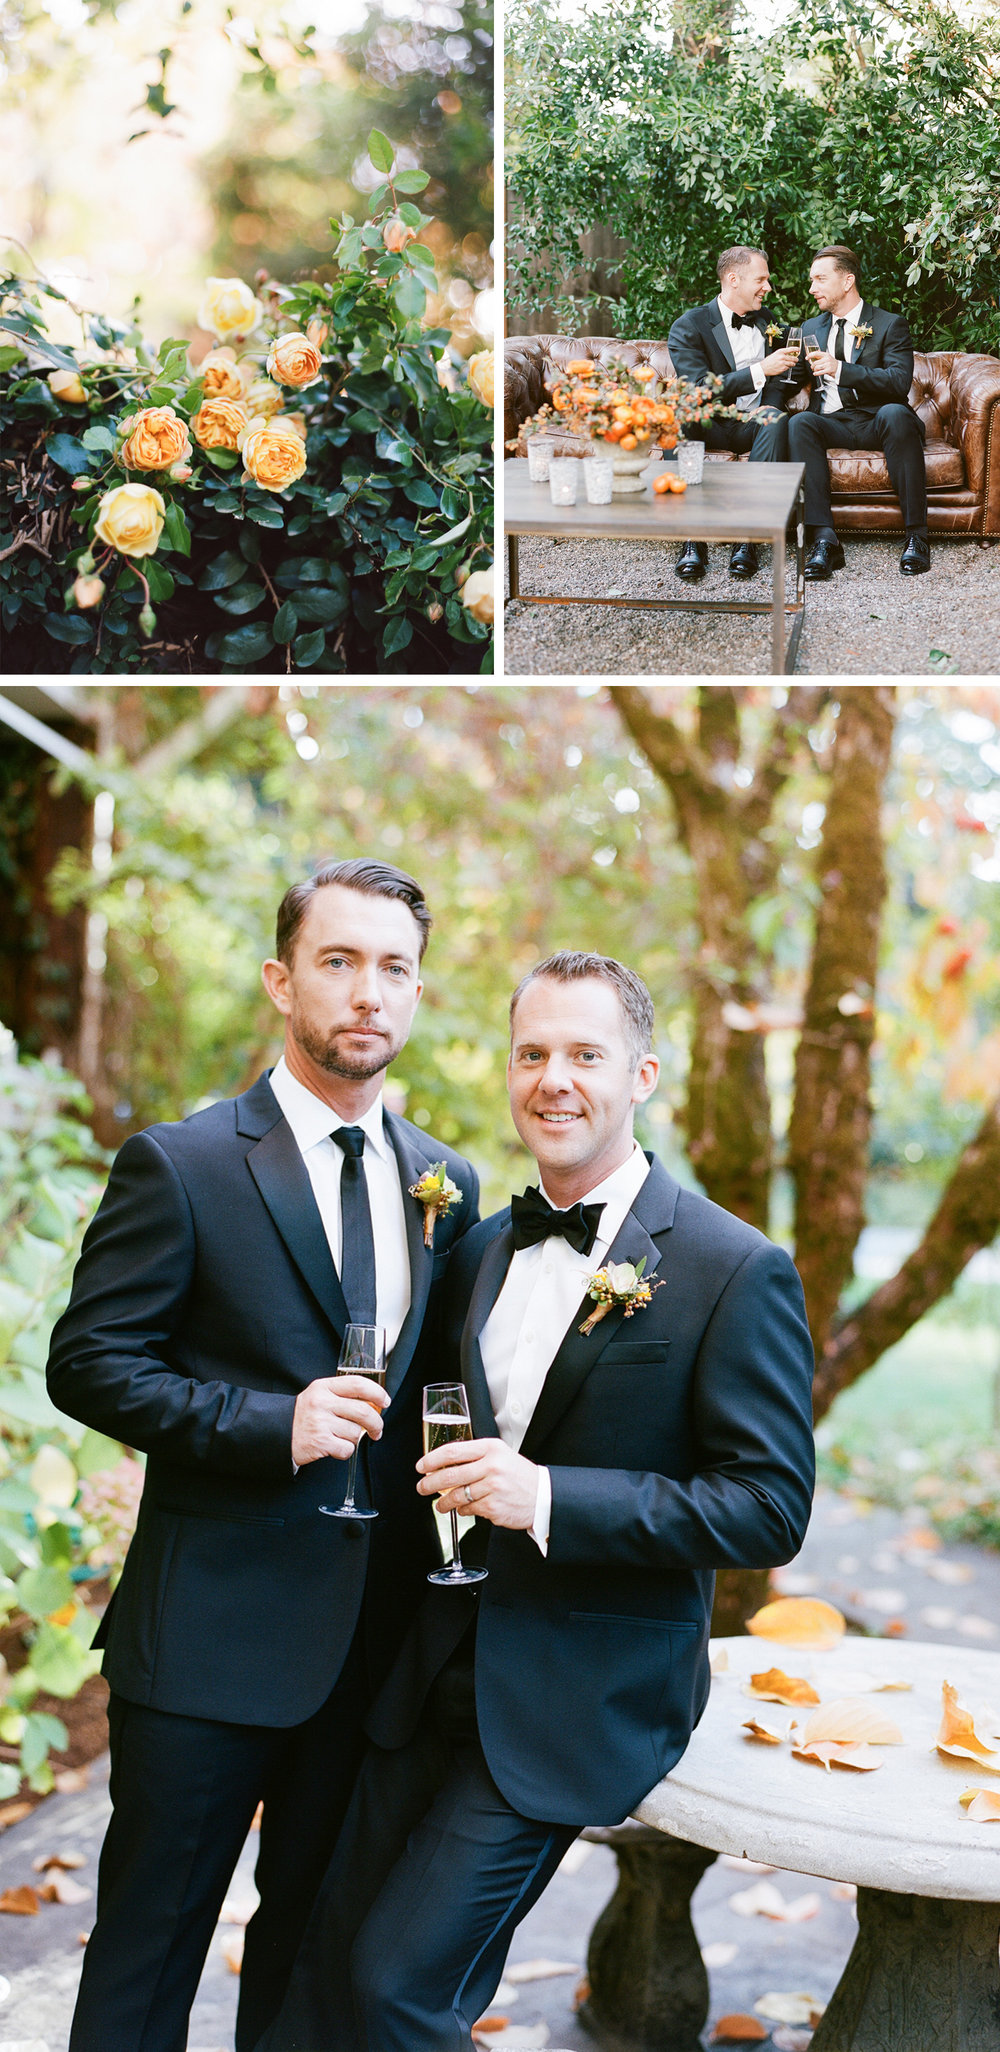 Yellow-orange floral details, grooms toast with champagne; Sylvie Gil Photography